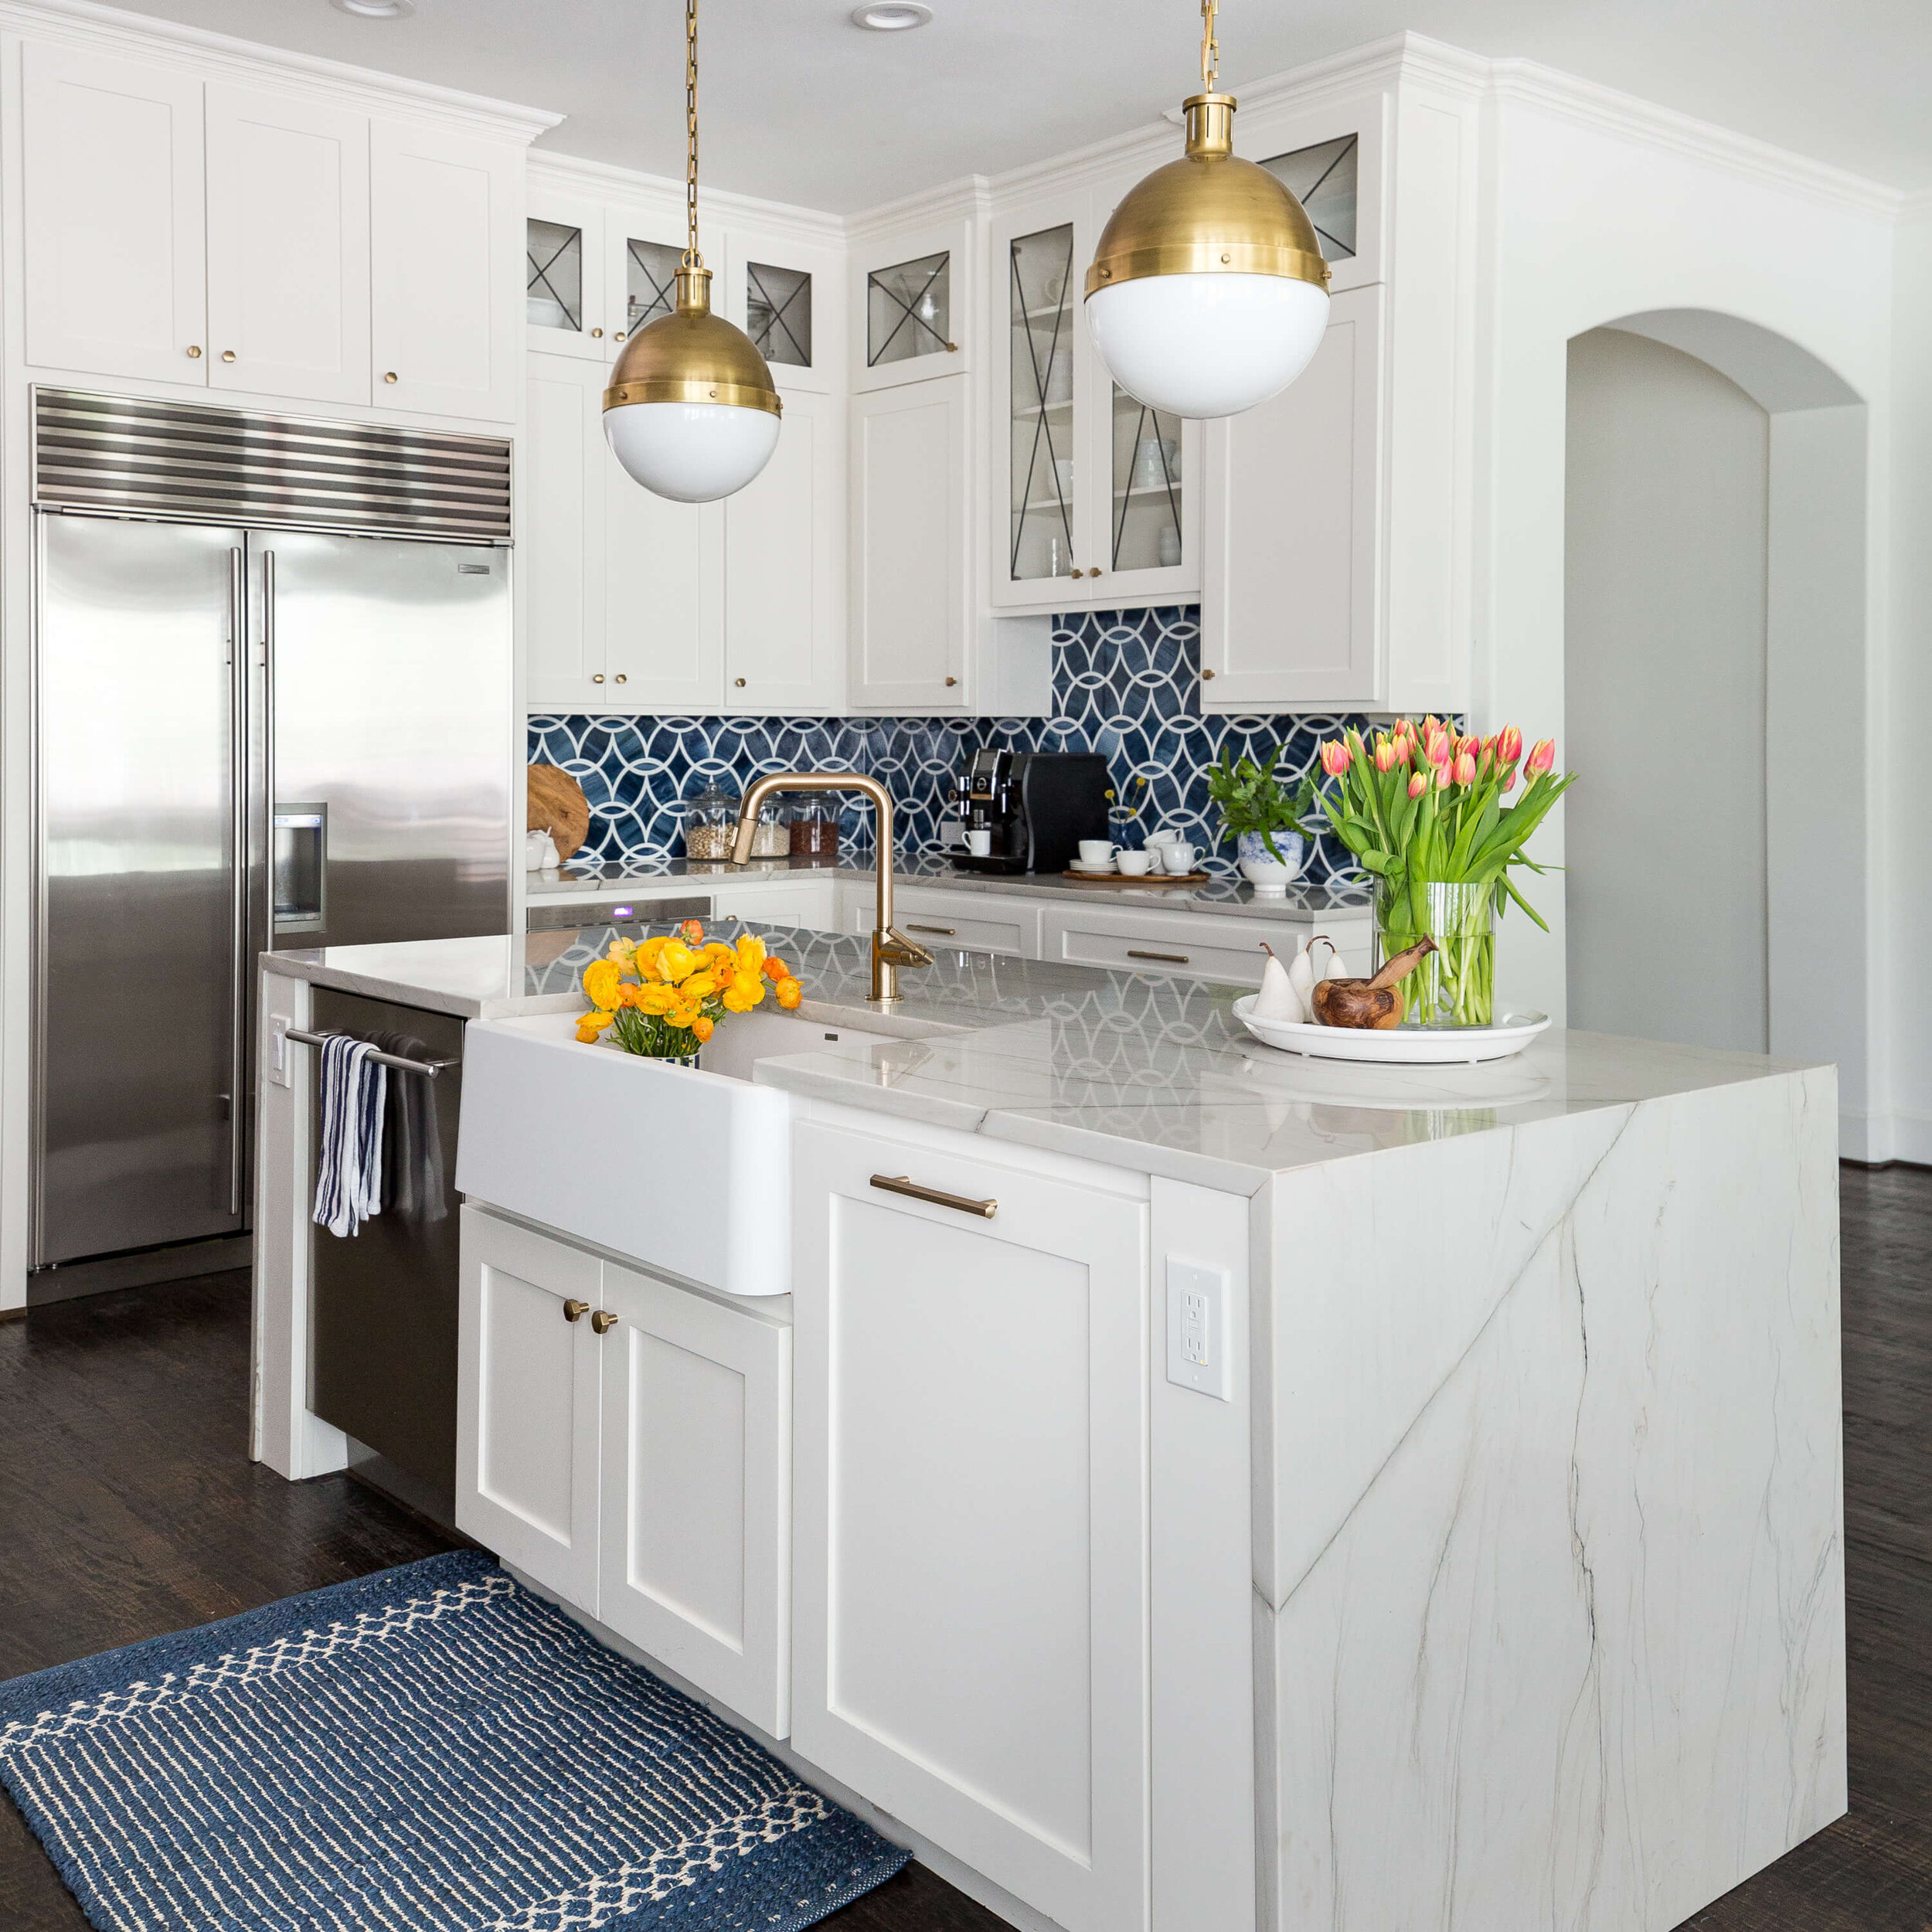 This kitchen has a low bar at the waterfall island. Outlets and switches were designed into the face of the working side, so there would be no interruption on the slab sides. Carla Aston, Designer | Colleen Scott, Photographer | #whitekitchen #kitchenbar #kitchendesign #kitchencountertop